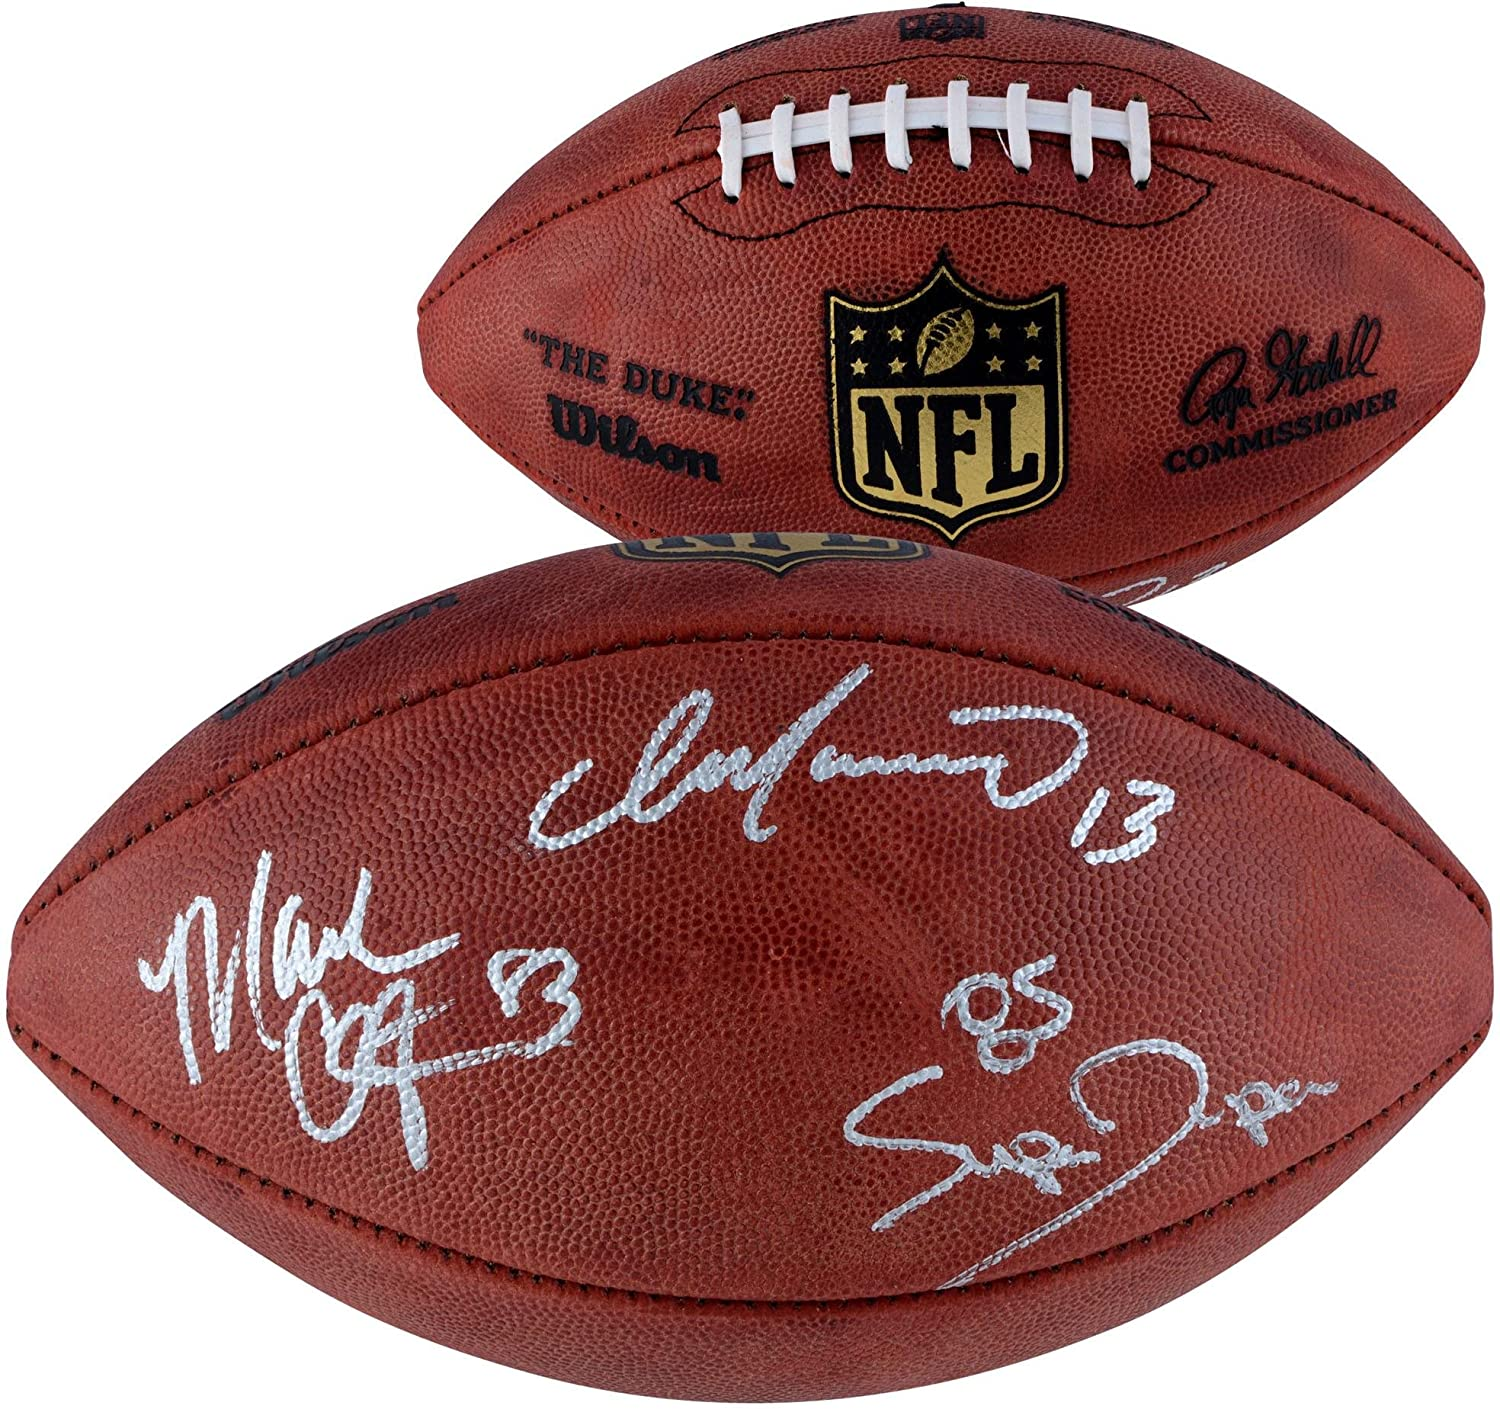 Dan Marino, Mark Clayton, Mark Duper Autographed Duke Pro Football - Fanatics Authentic Certified - Autographed Footballs